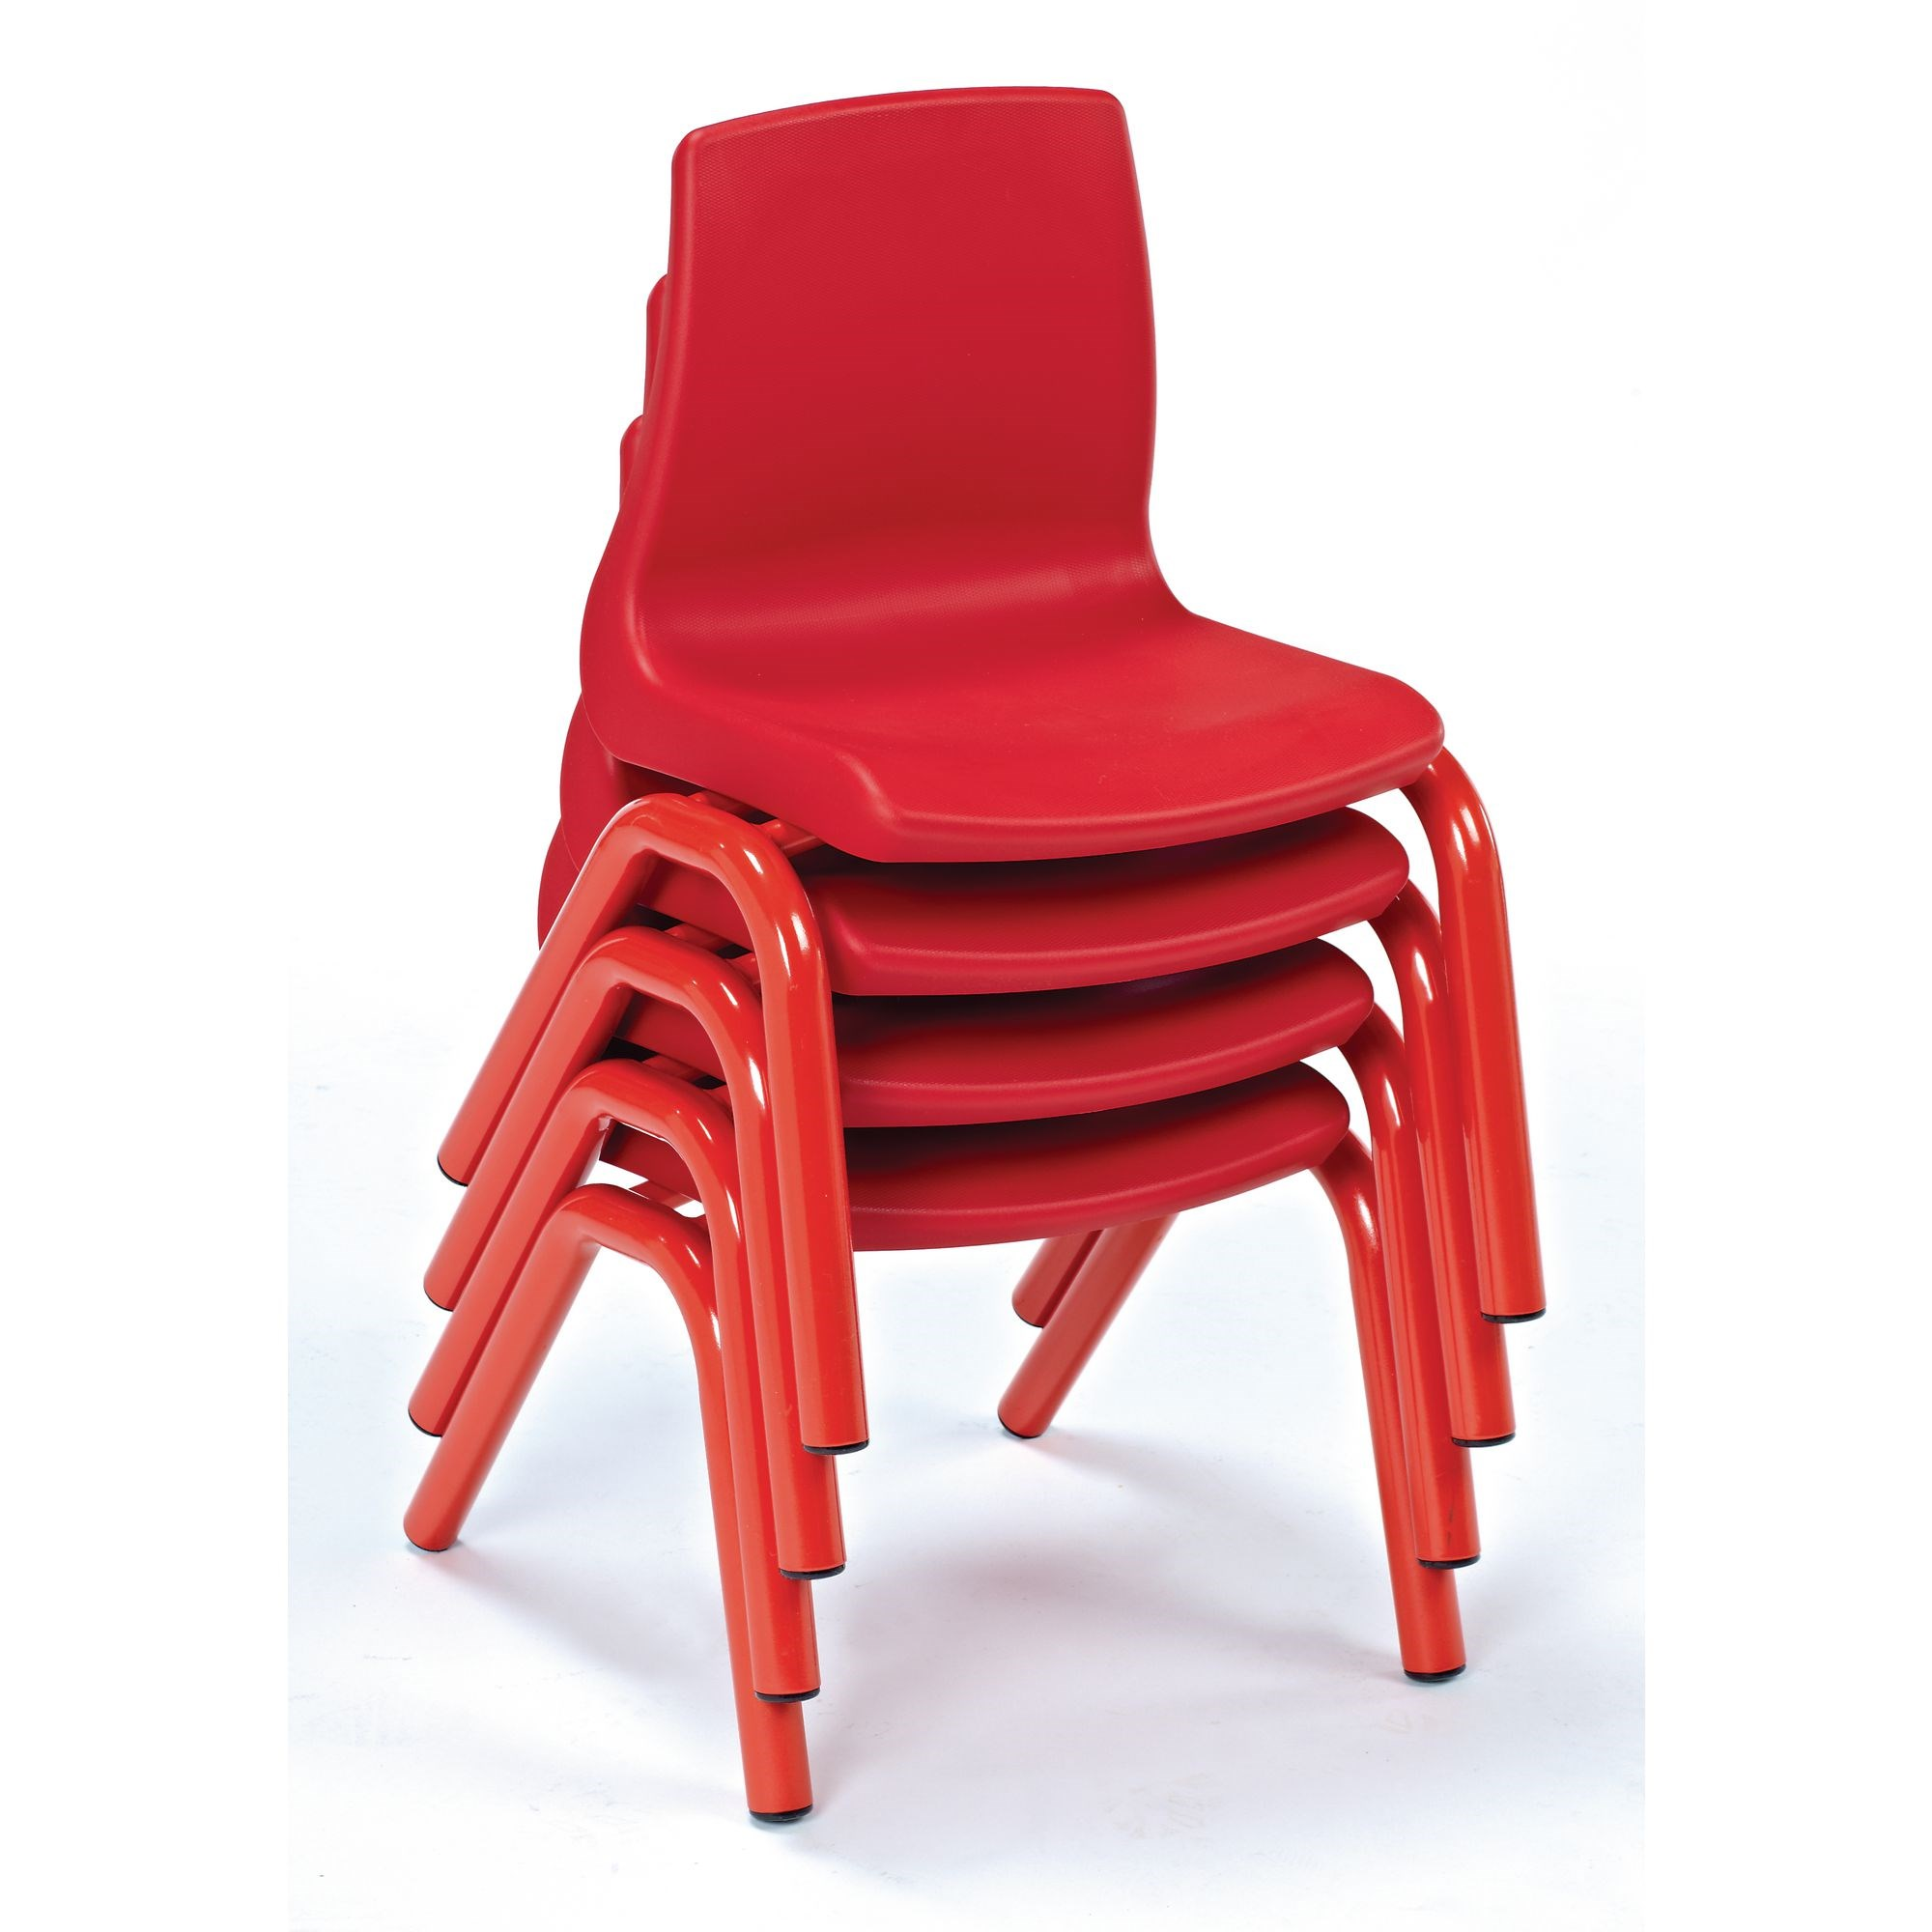 Harlequin Chairs Size A Yel